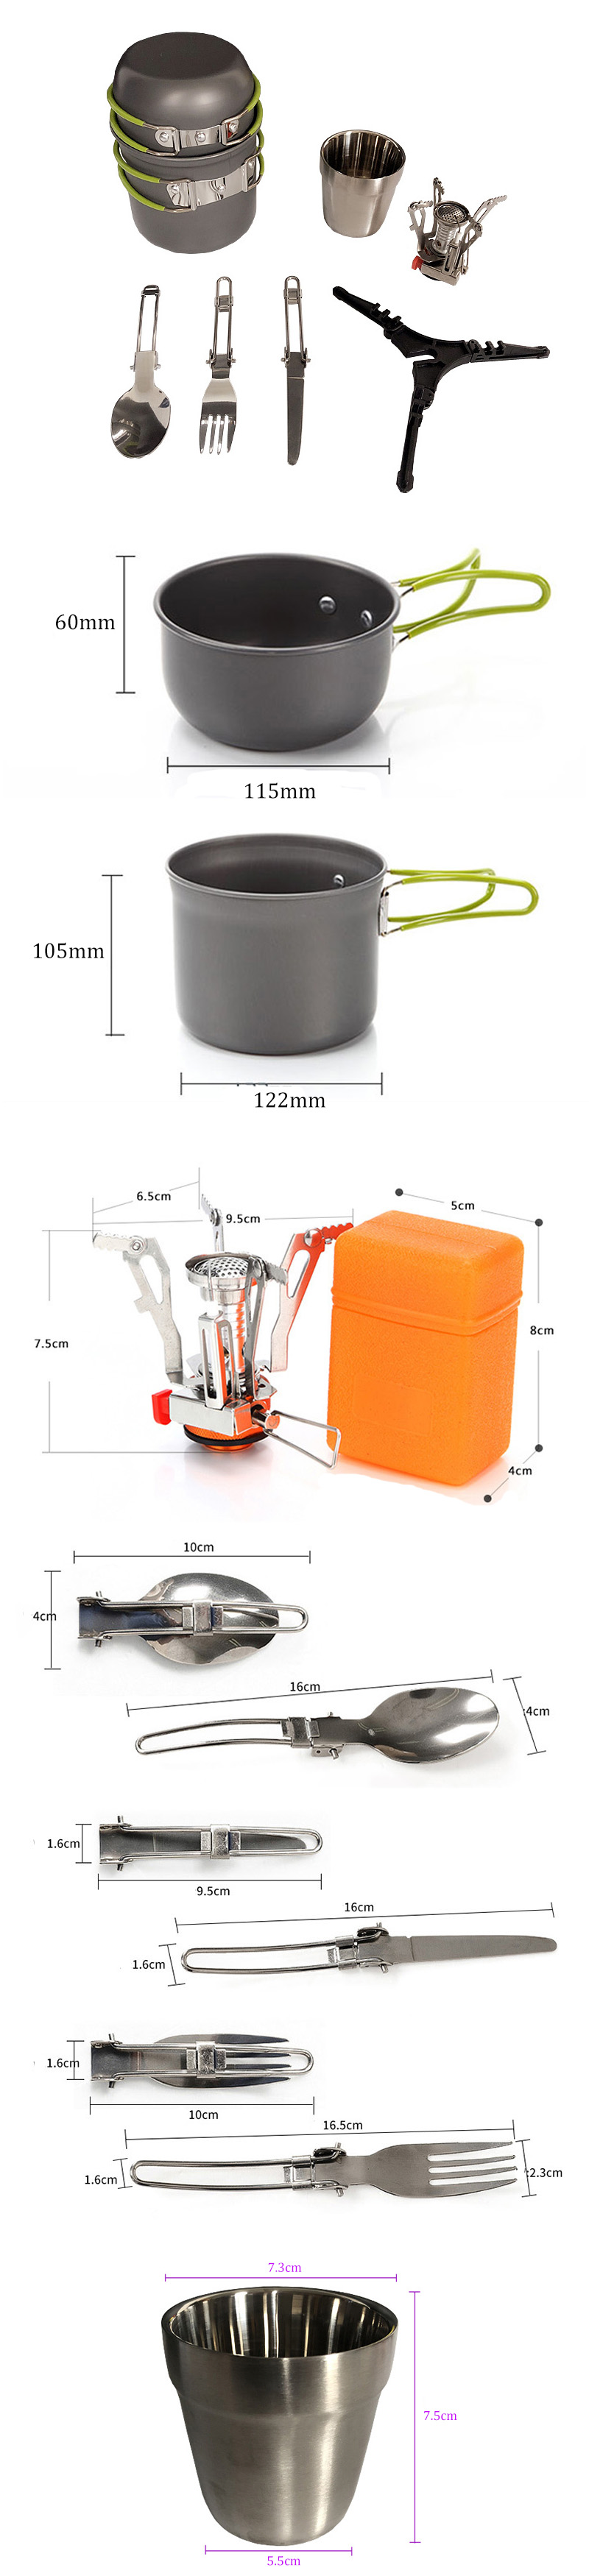 1-2 People Cookware Camping Picnic Set Tableware Portable Stove Bracket Cup Cooking Equipment